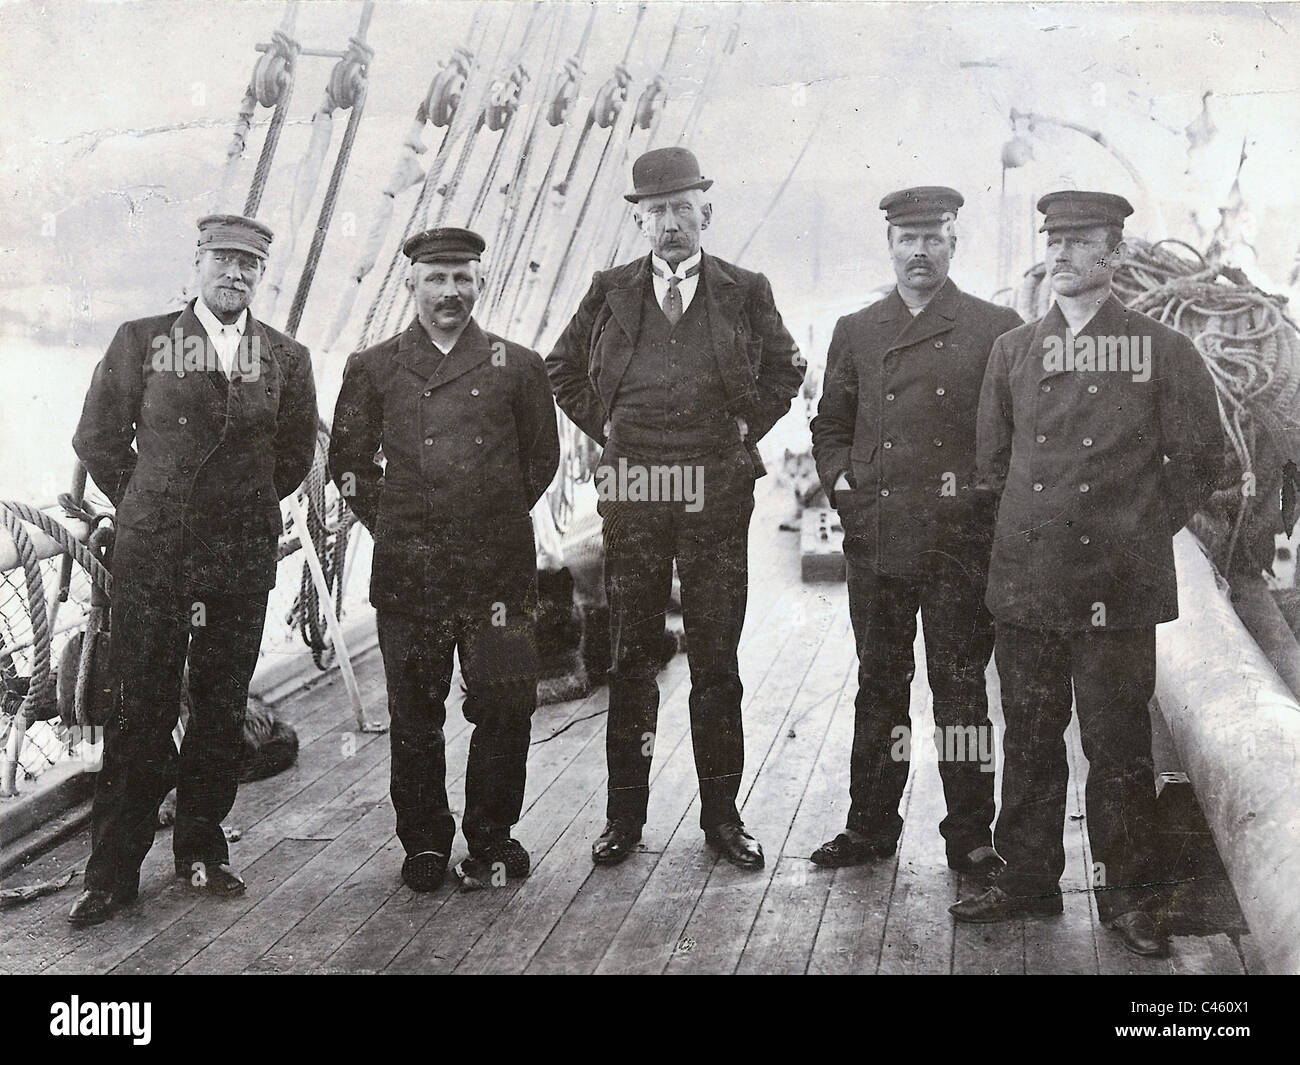 Roald Amundsen with expedition members, 1911 - Stock Image